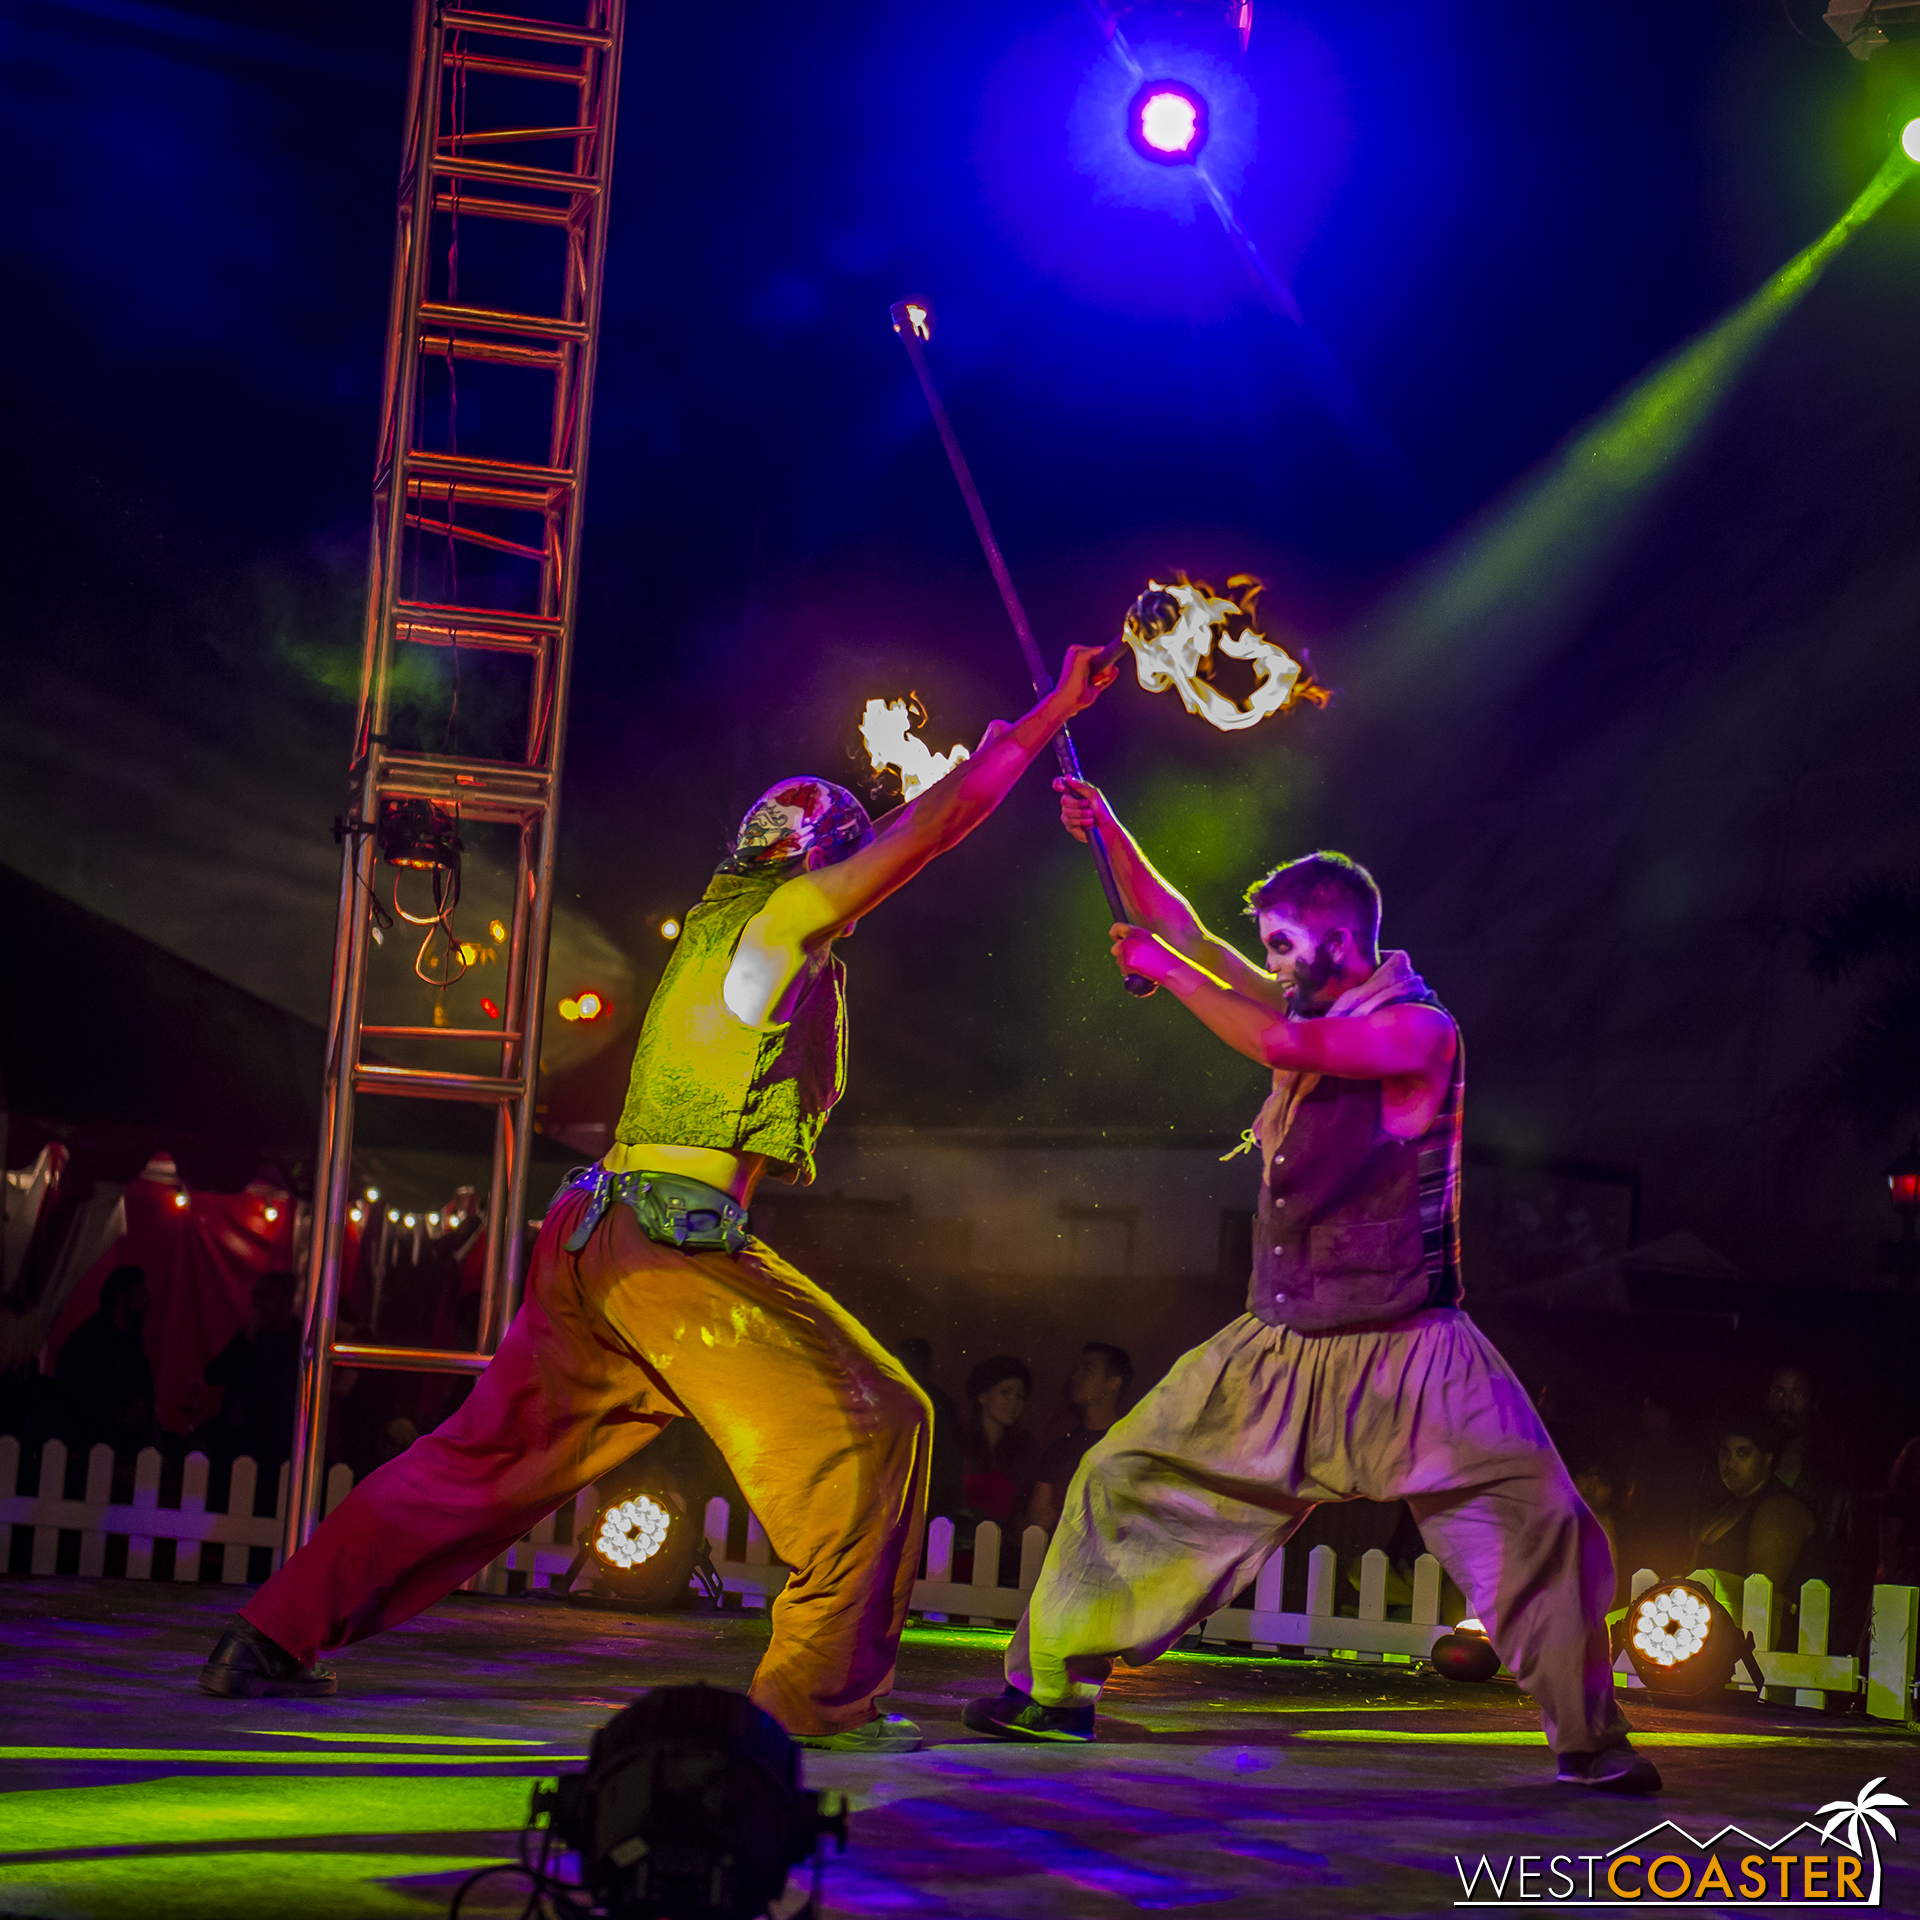 Very talented fire spinners do battle and engage in tricks and stunts to thrill the audience with their fire play.